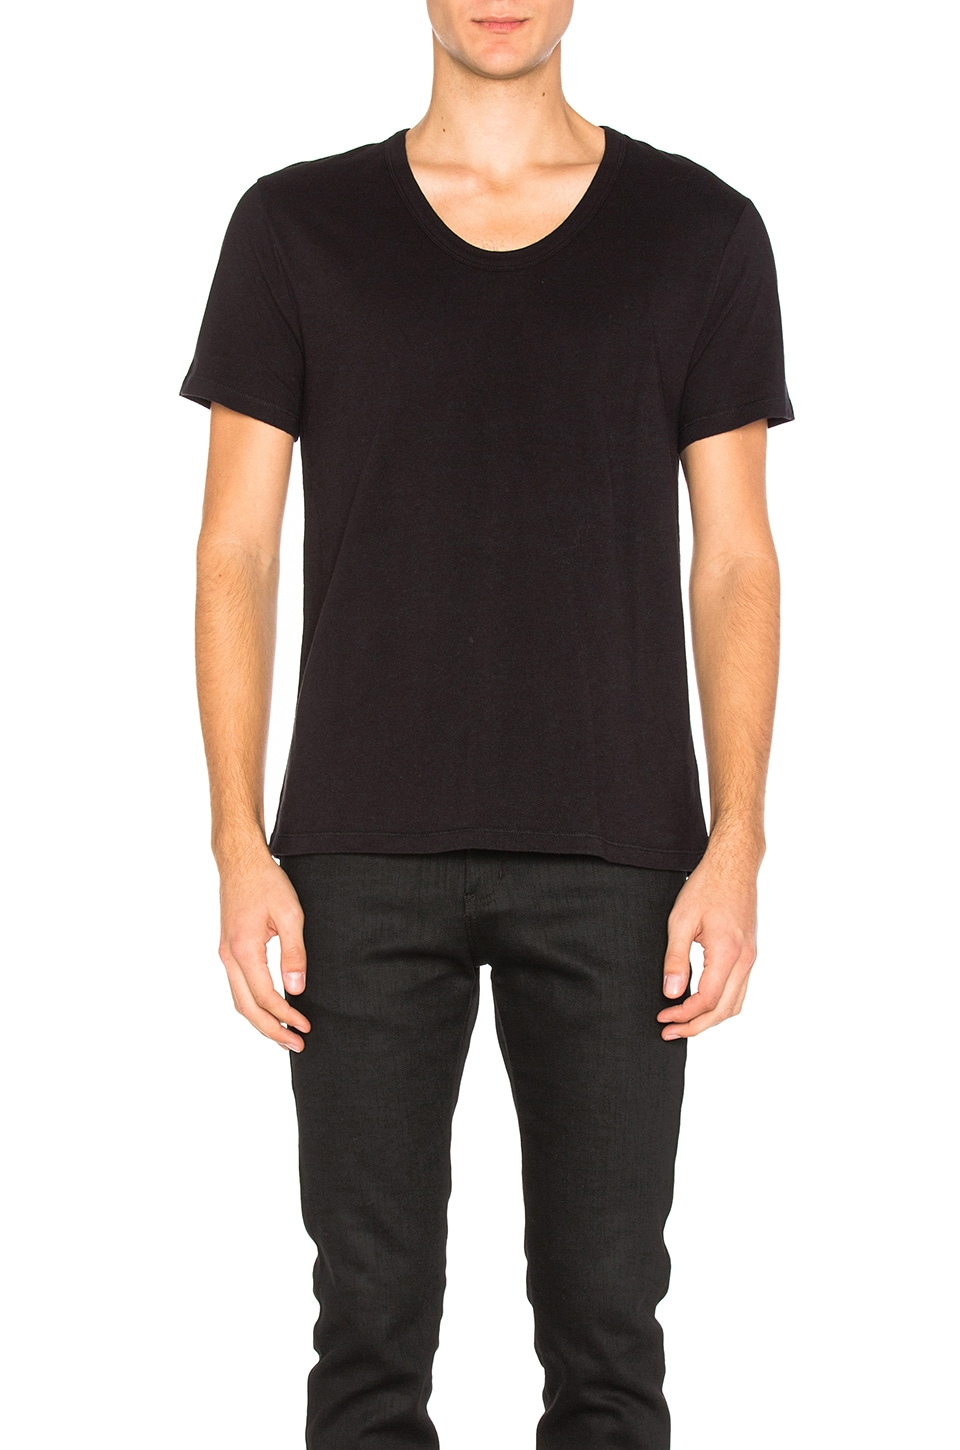 Pima Cotton Low Neck Tee by T by Alexander Wang